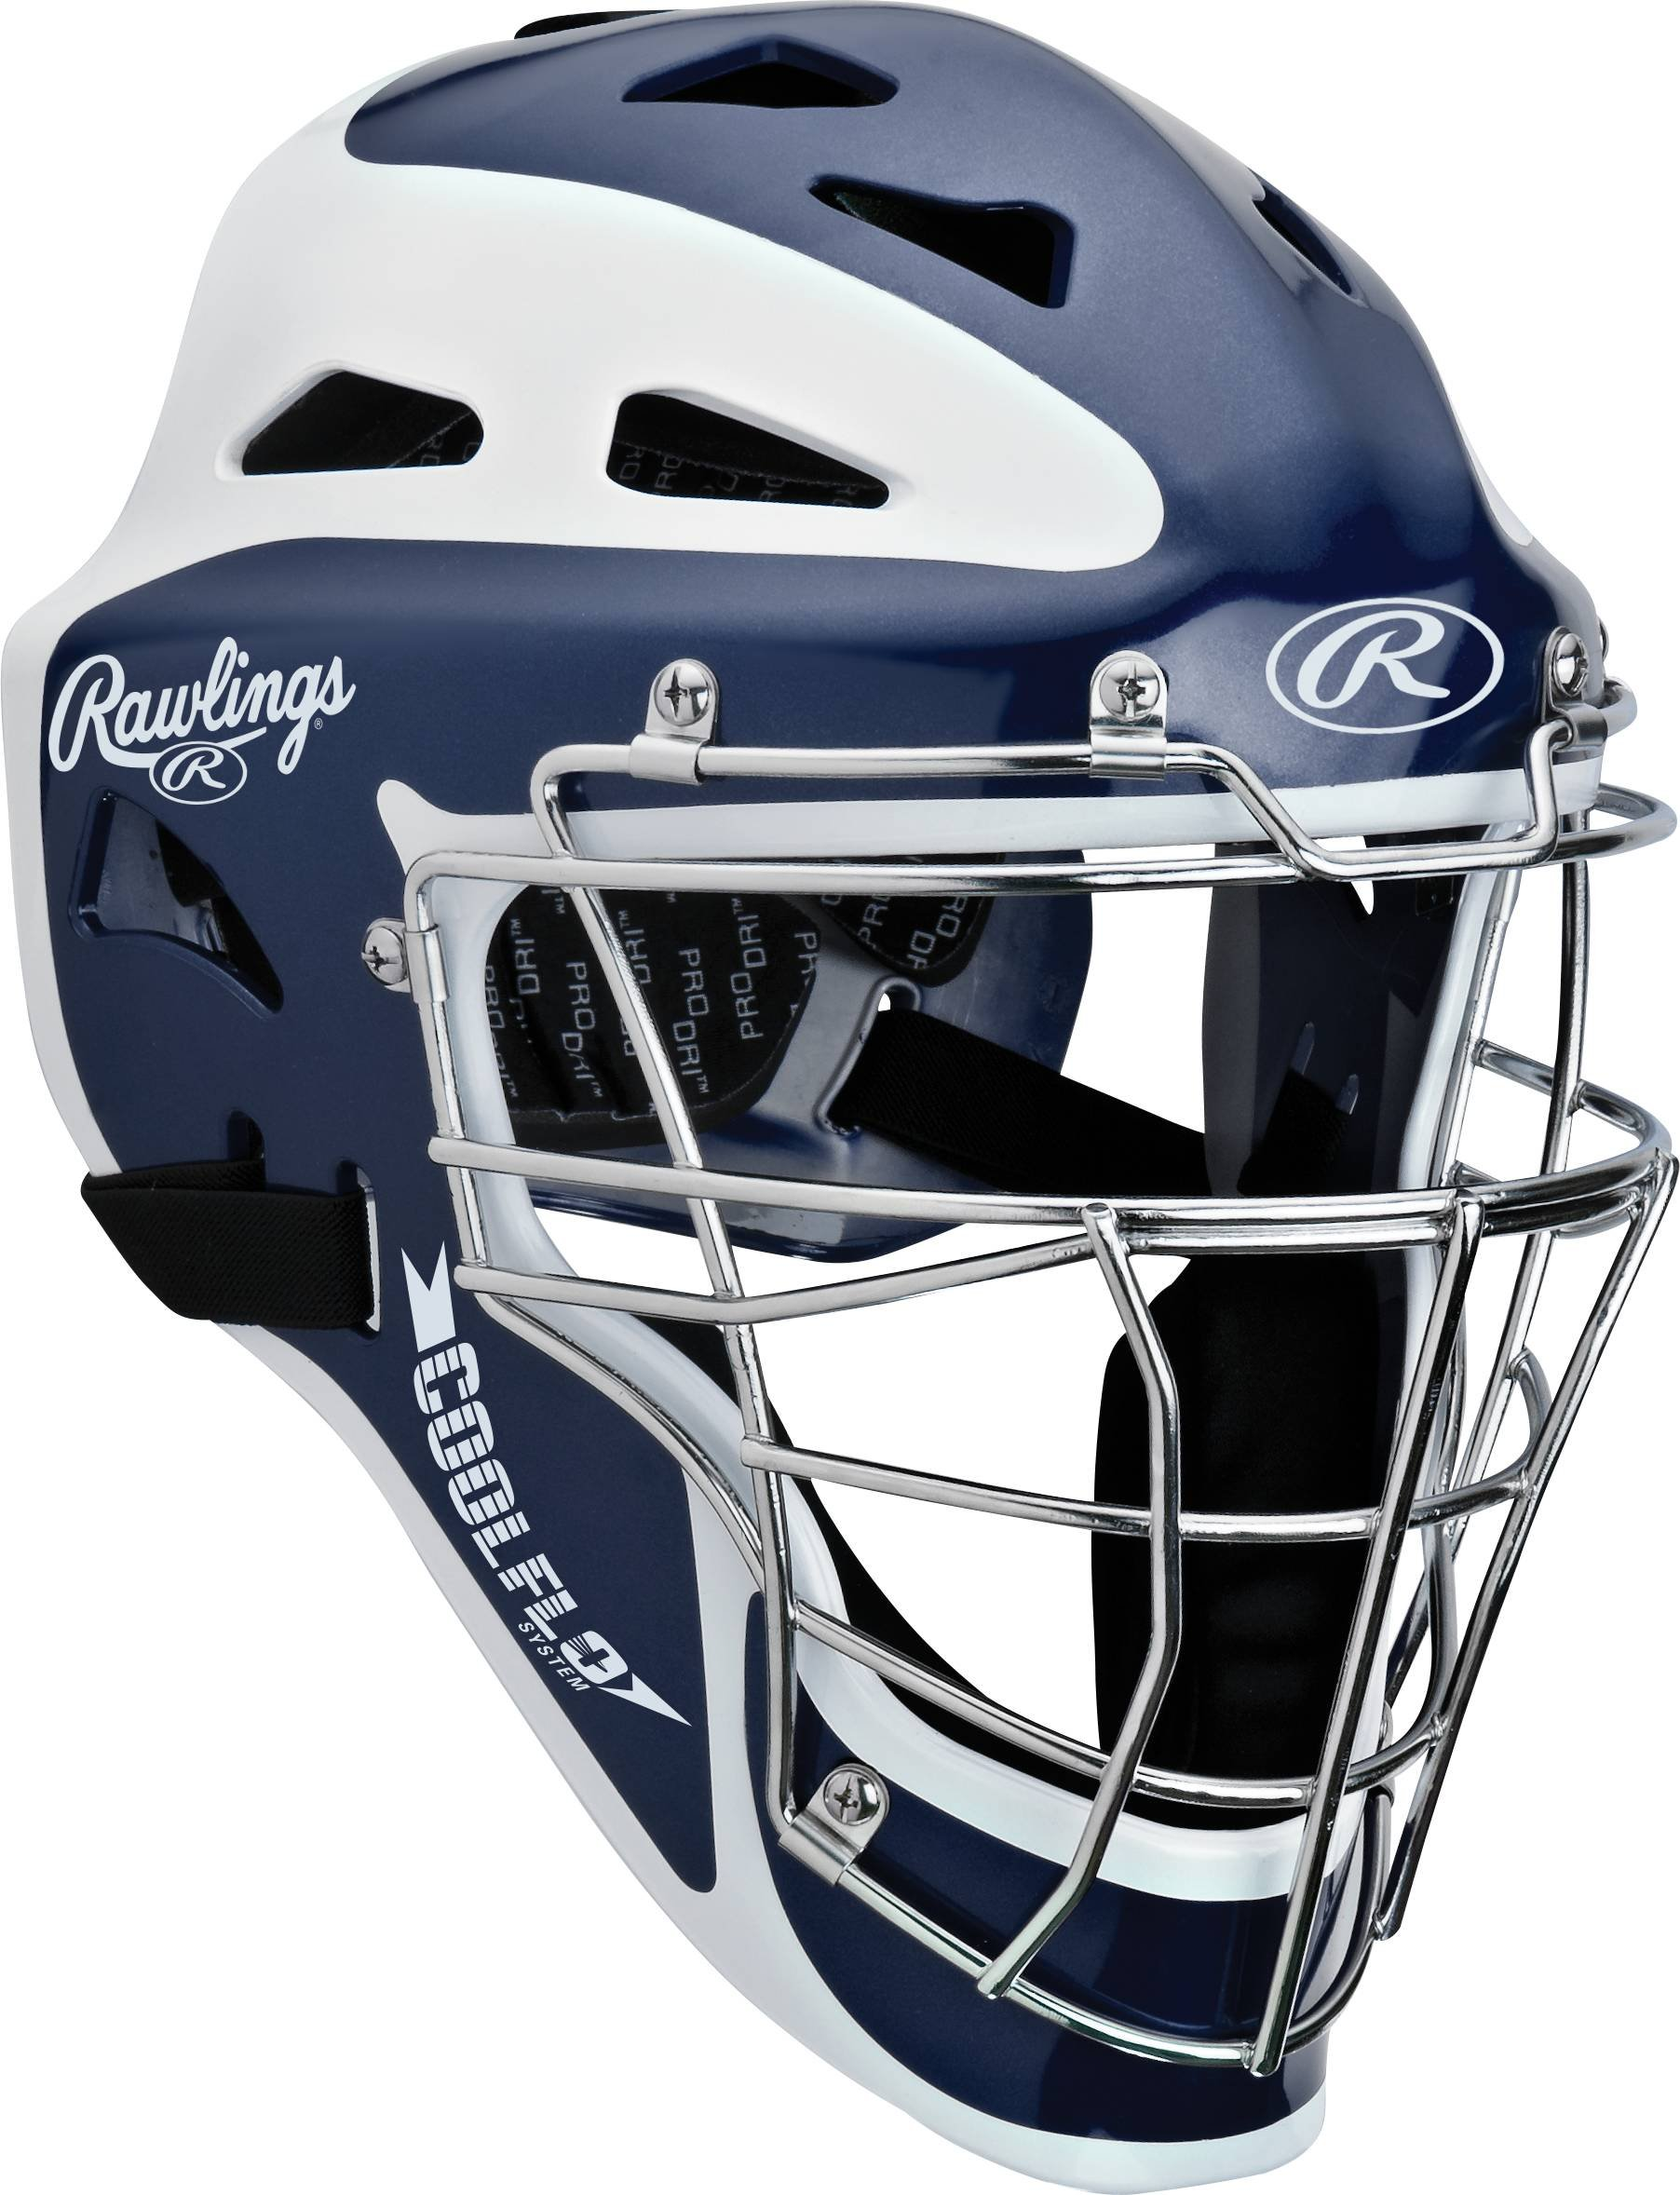 Rawlings Two-Tone Translucent Matte Hockey Style Catchers Mask, Navy by Rawlings